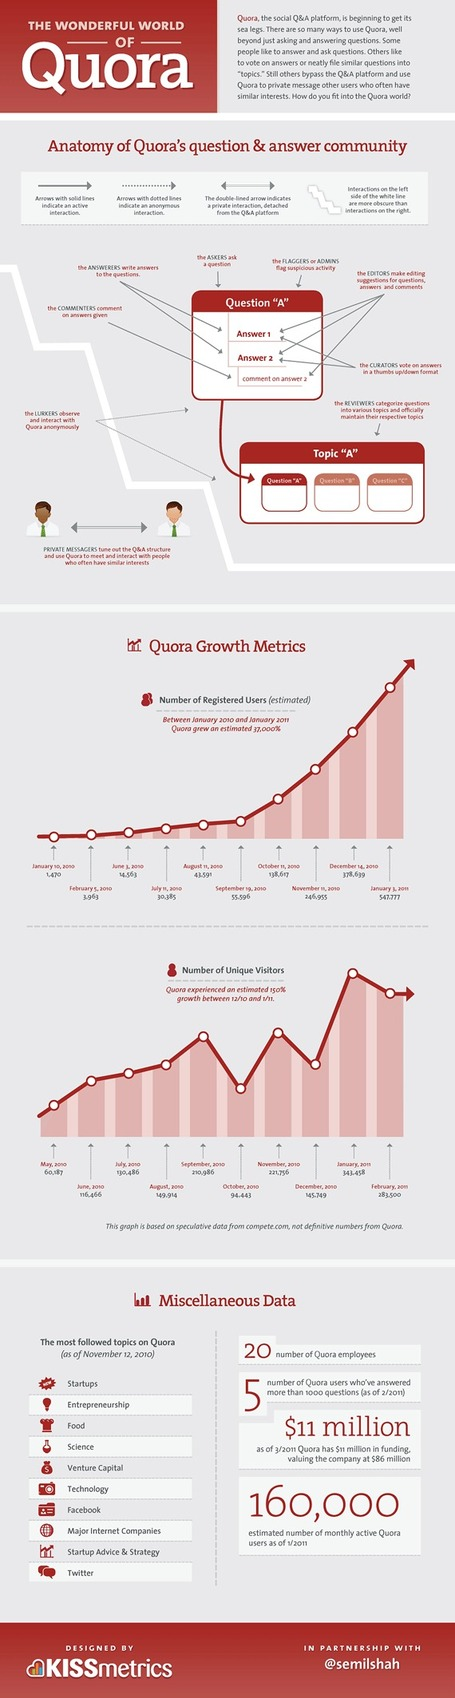 The Wonderful World Of Quora | SEO, SEM & Social Media NEWS | Scoop.it